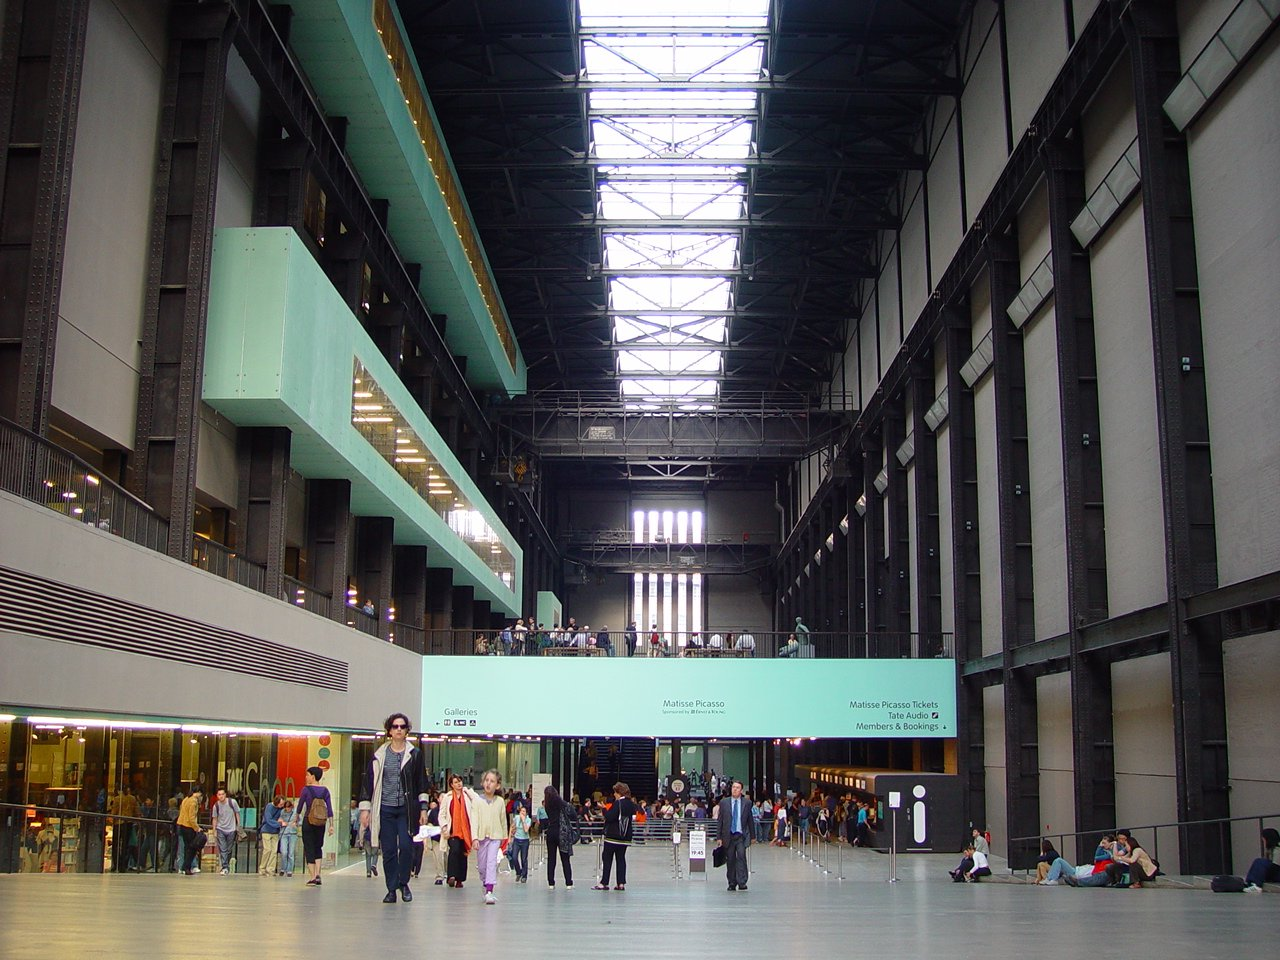 tate museum tourism marketing strategies Marketing budget, so it is crucial to influence that process to ensure that marketing communication helps bring about the sustainable tourism objectives in the strategy (see guide.